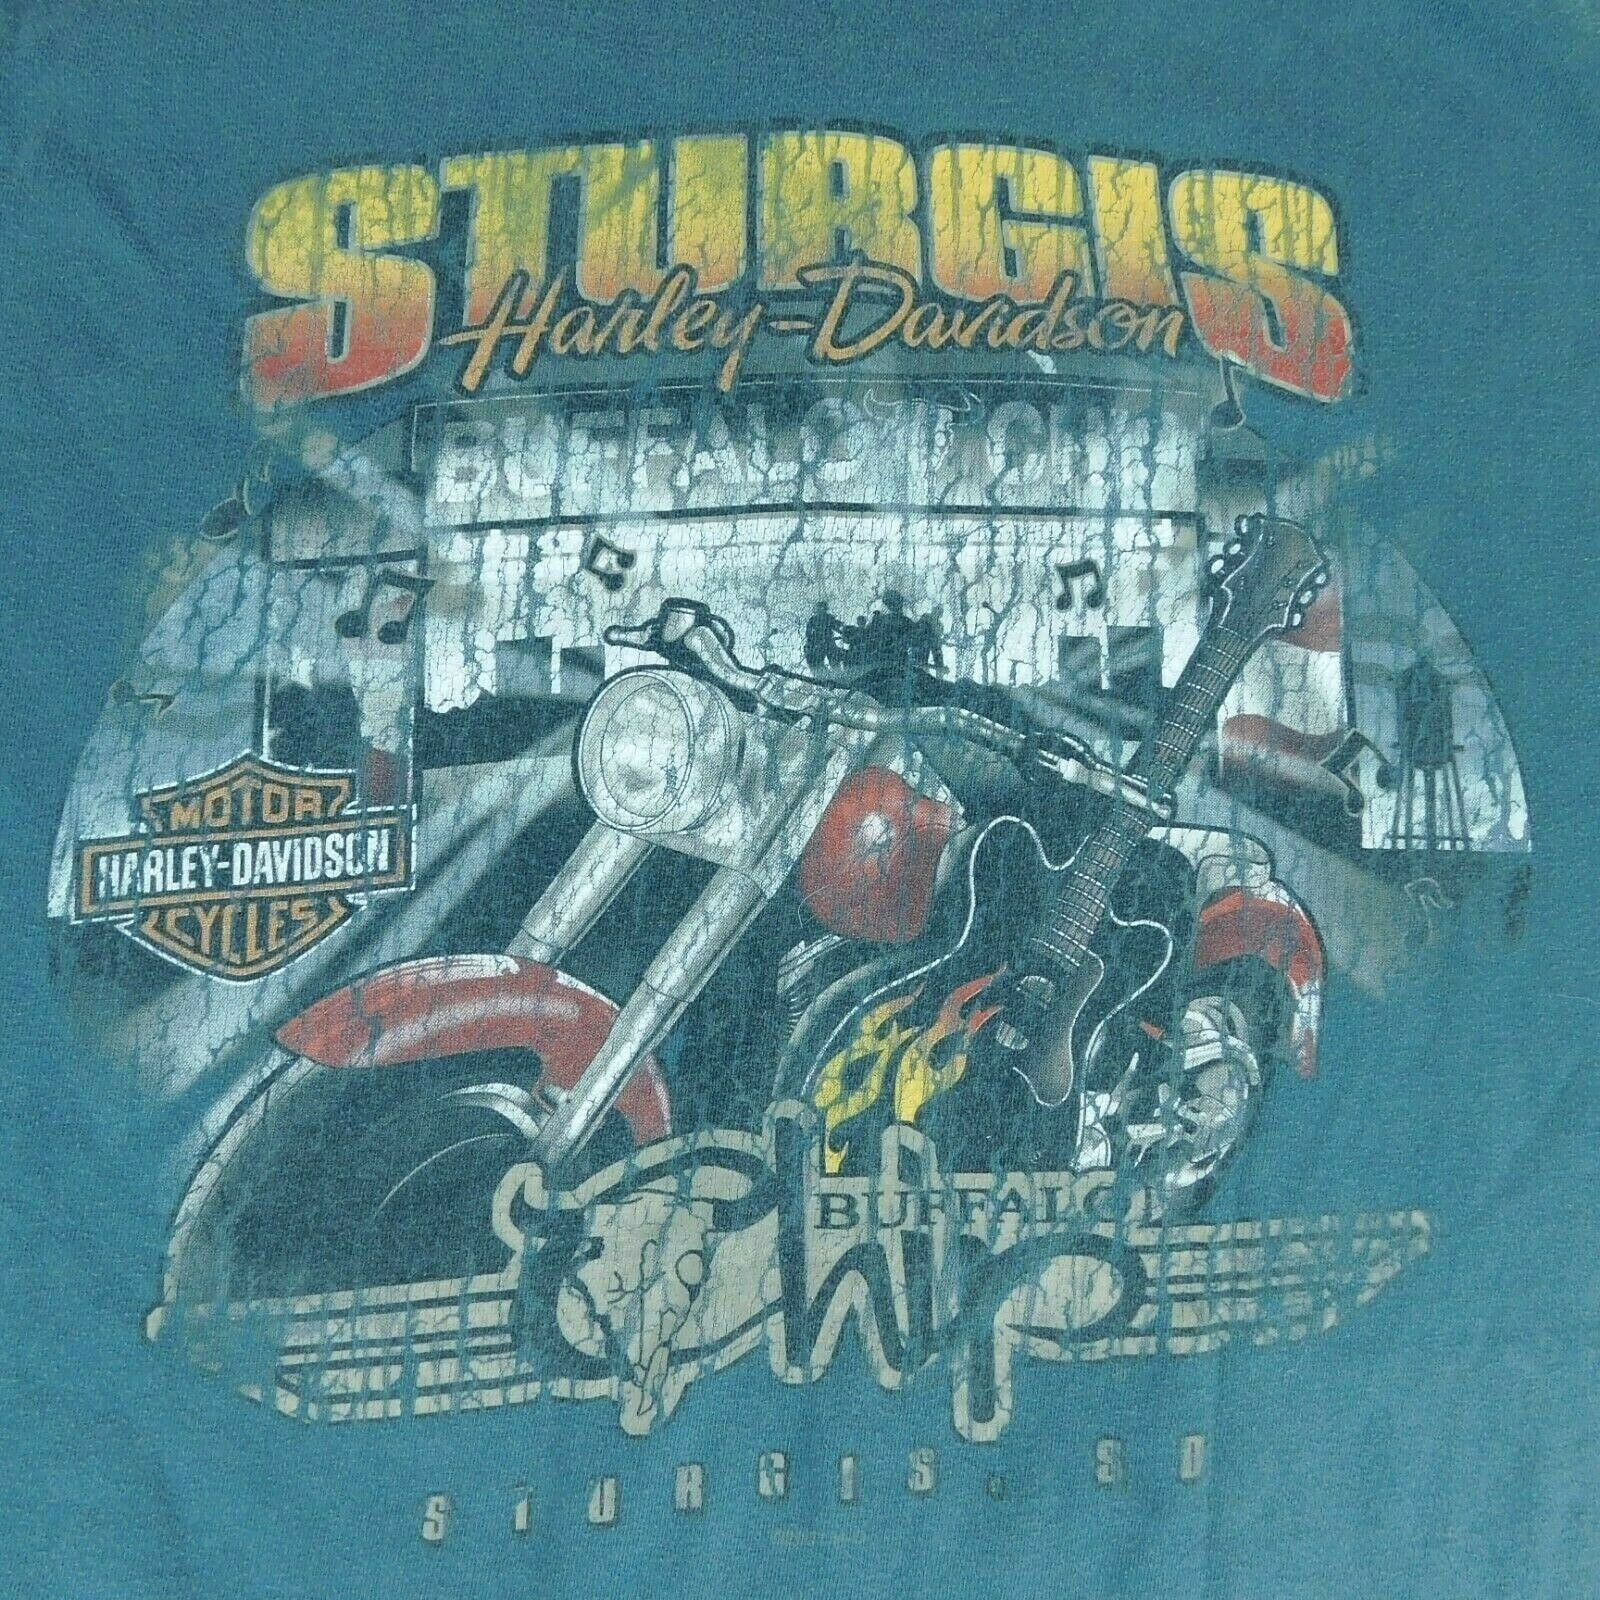 Harley Davidson Sturgis Black Hills Rally 2008 Buffalo Chip Blue T Shirt Sz XL image 5